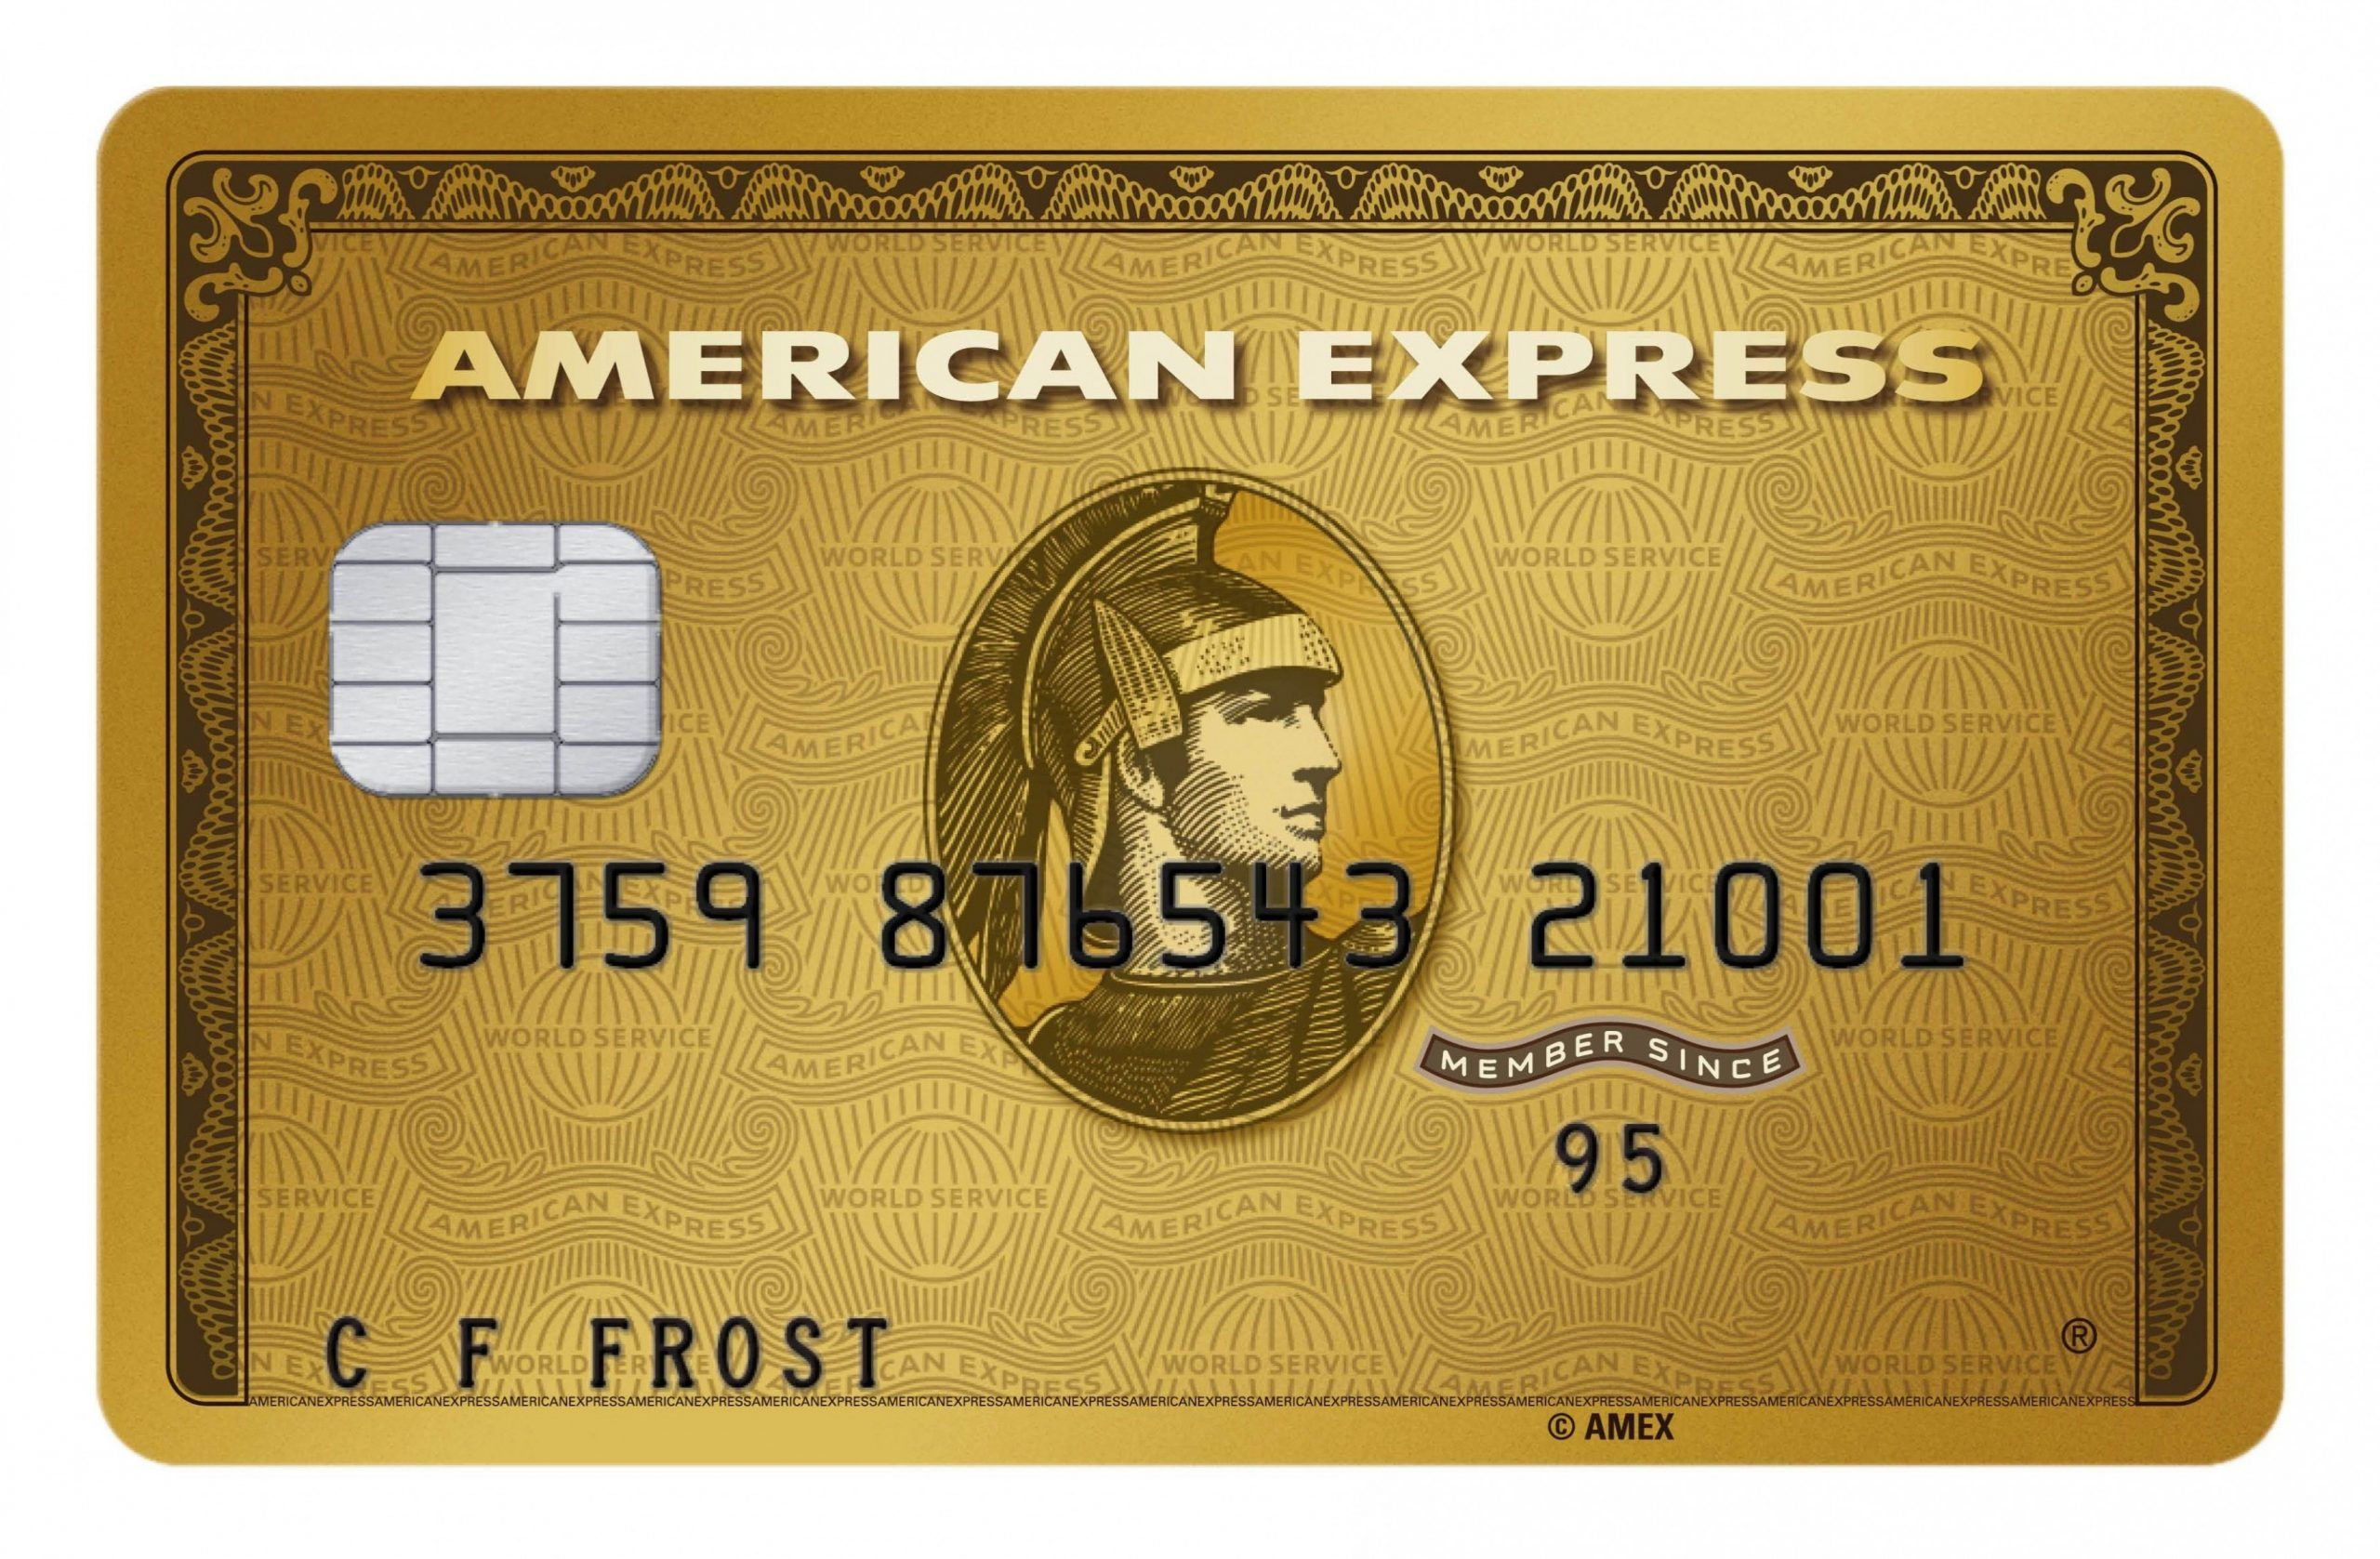 Bank Of America Gold Debit Card Seven Bank Of America Gold Debit Card That Had Gone Way Too Best Travel Credit Cards Travel Credit Cards Business Credit Cards